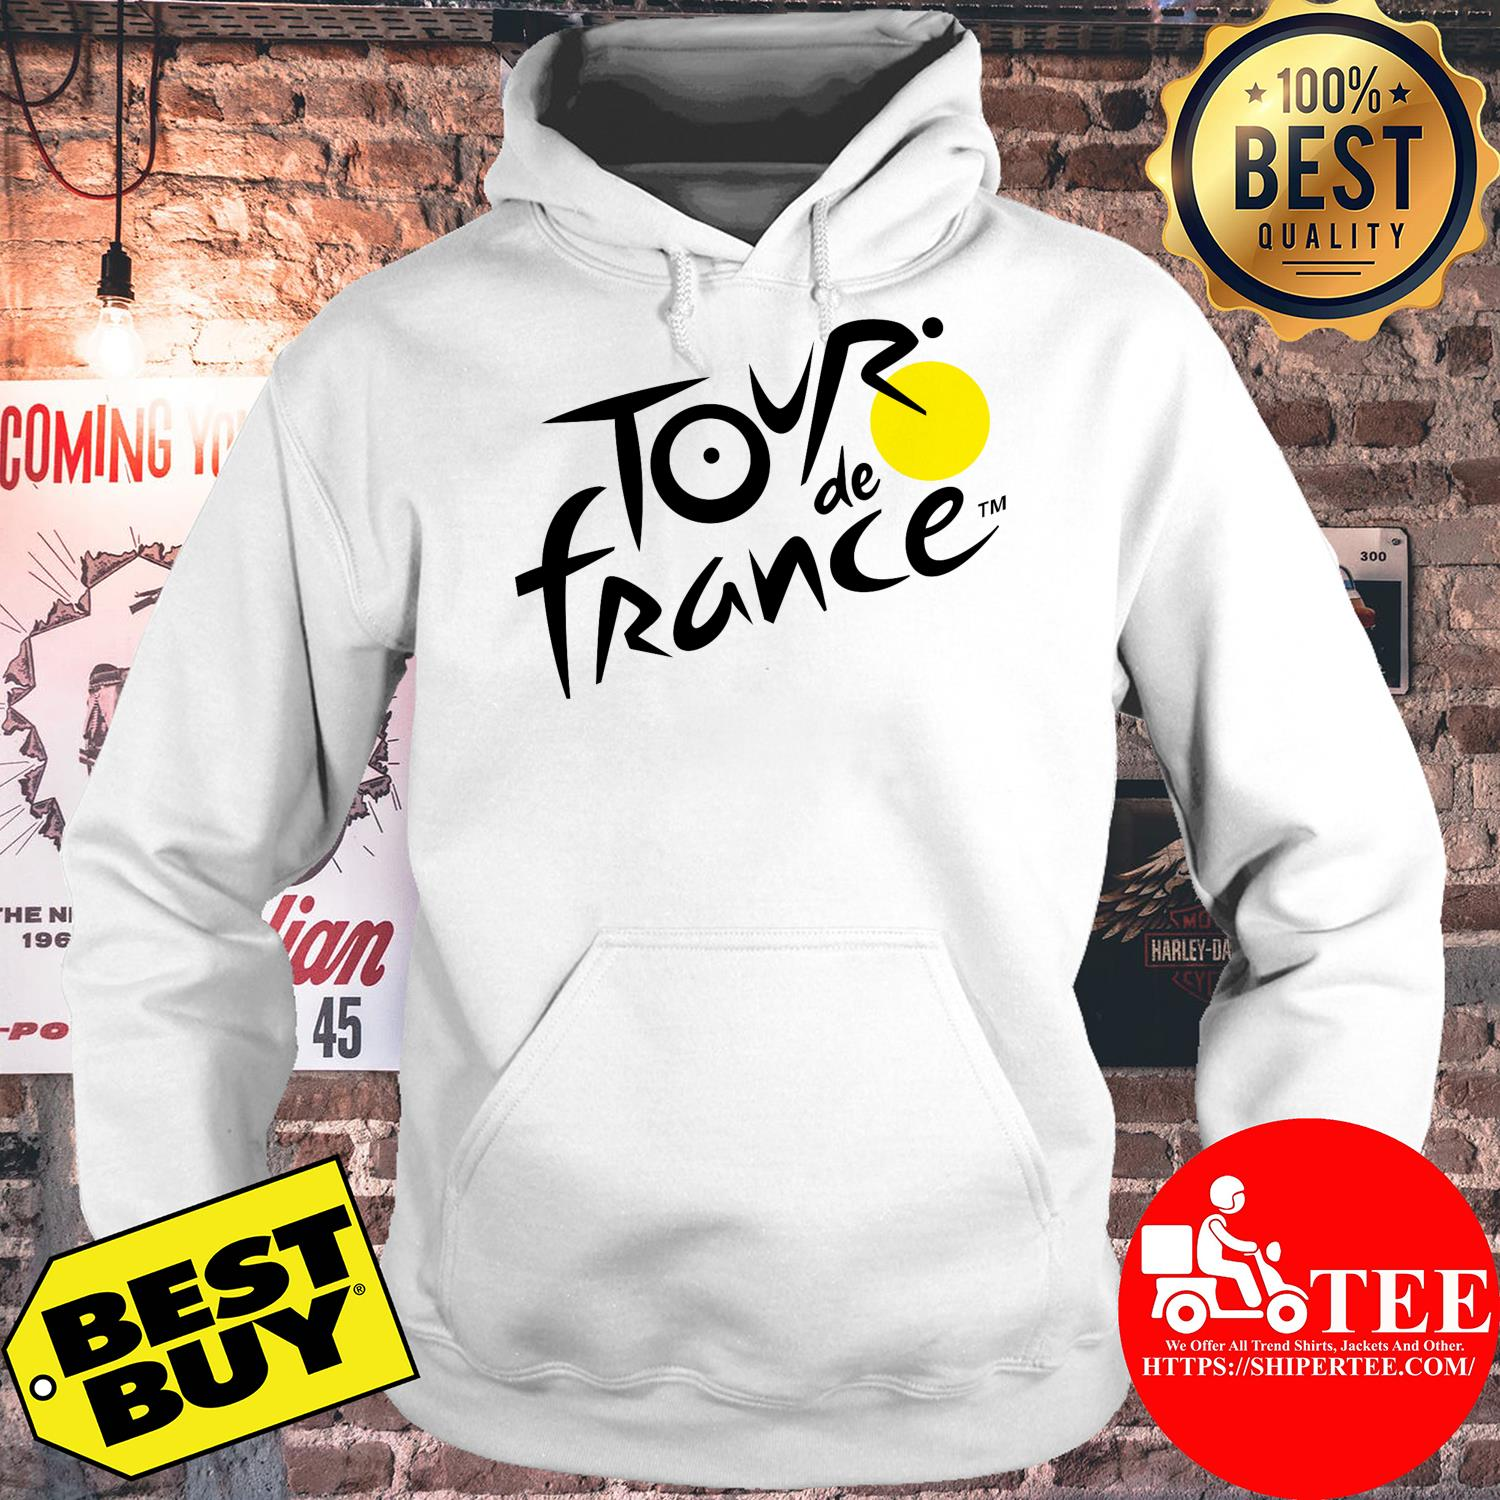 Official logo of Le Tour de France hoodie